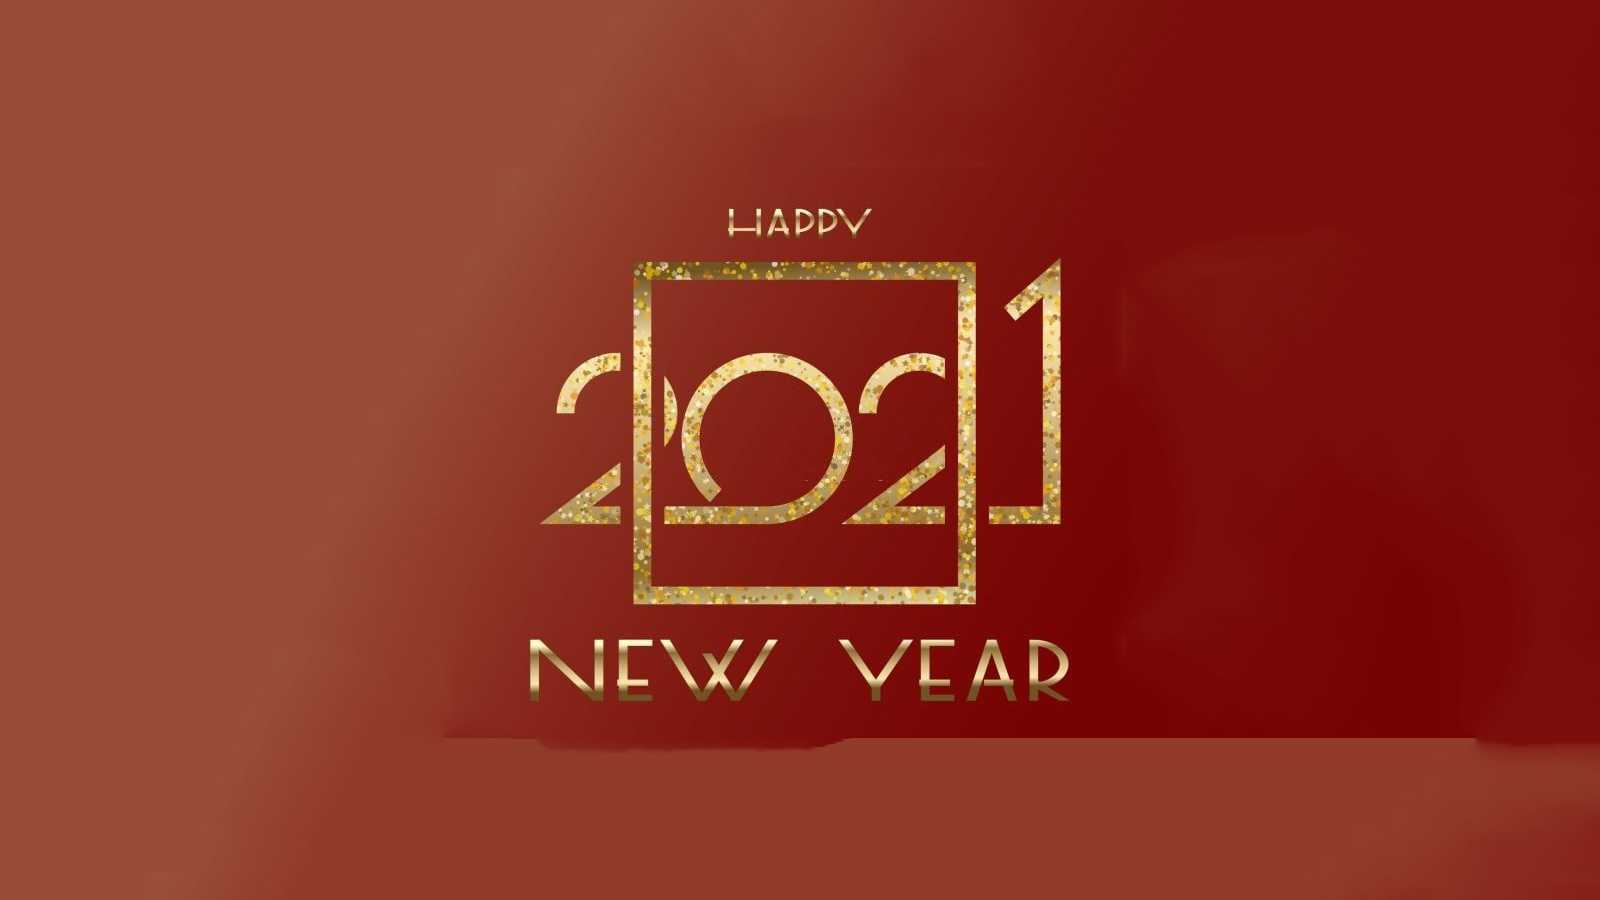 2021 New Year Wallpapers 3